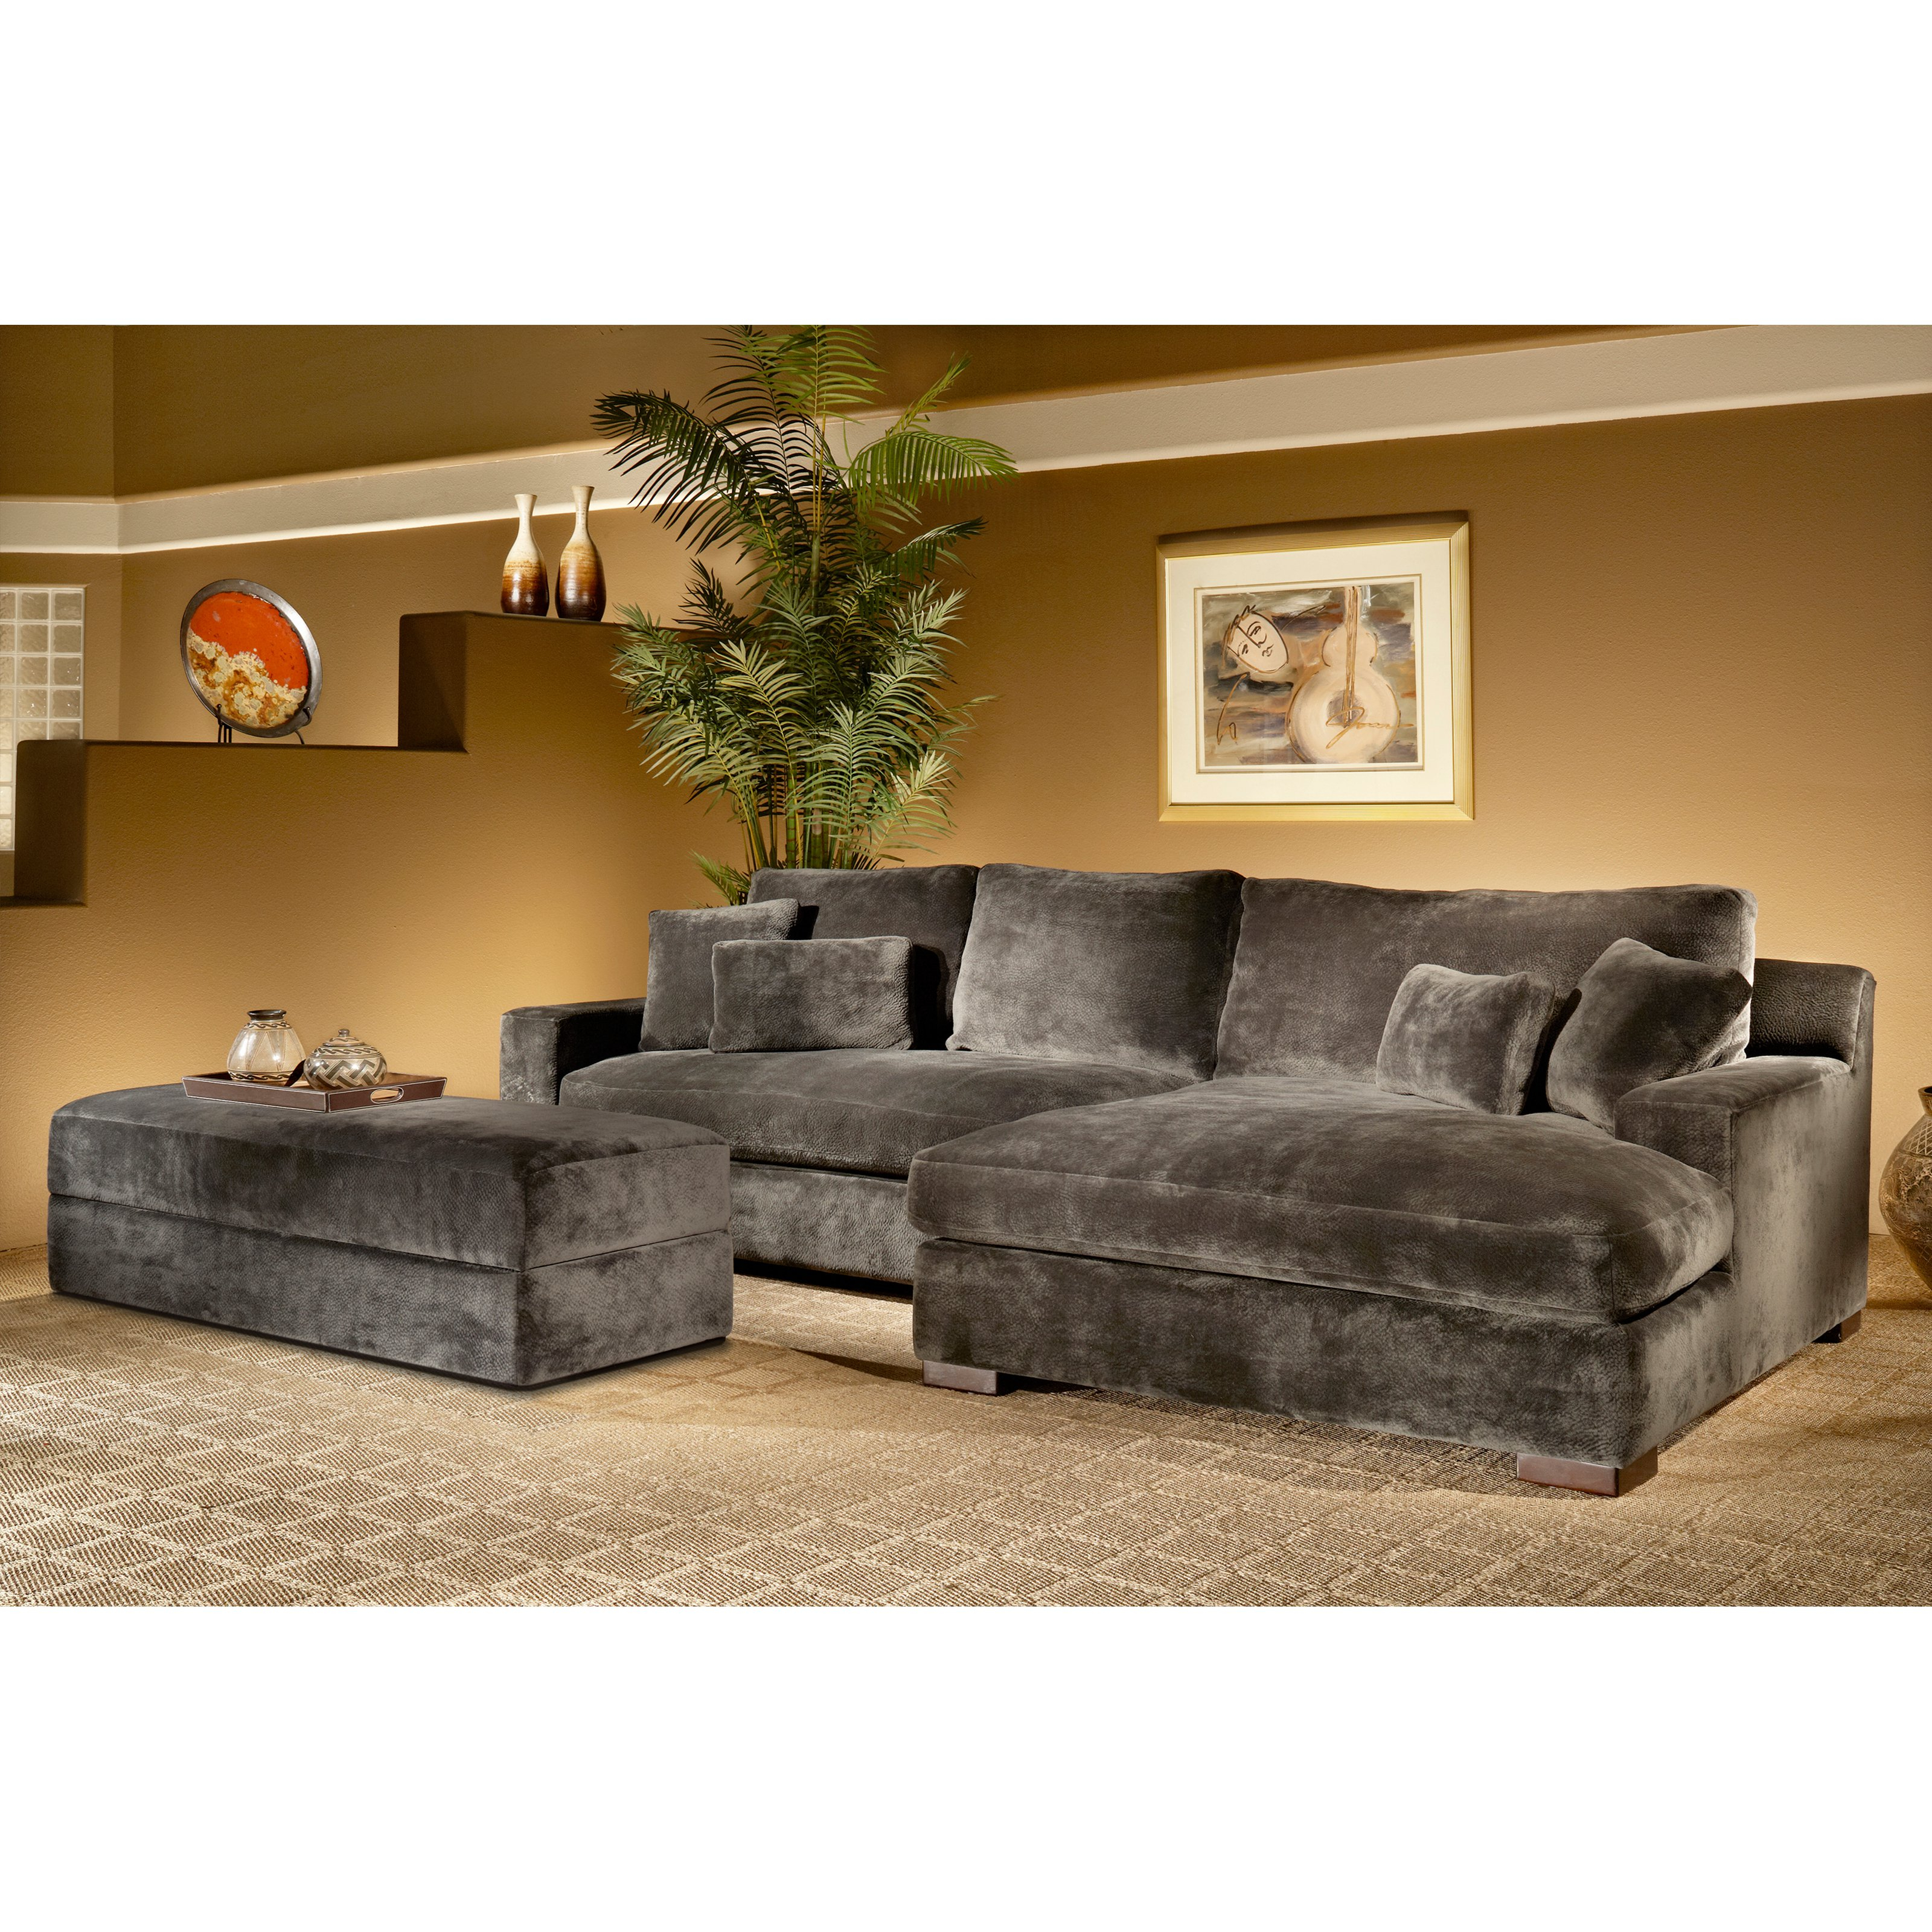 Transitional Sectional Comfy Amp Stylish Home Decor T In Most Recent Avery 2 Piece Sectionals With Raf Armless Chaise (View 16 of 20)